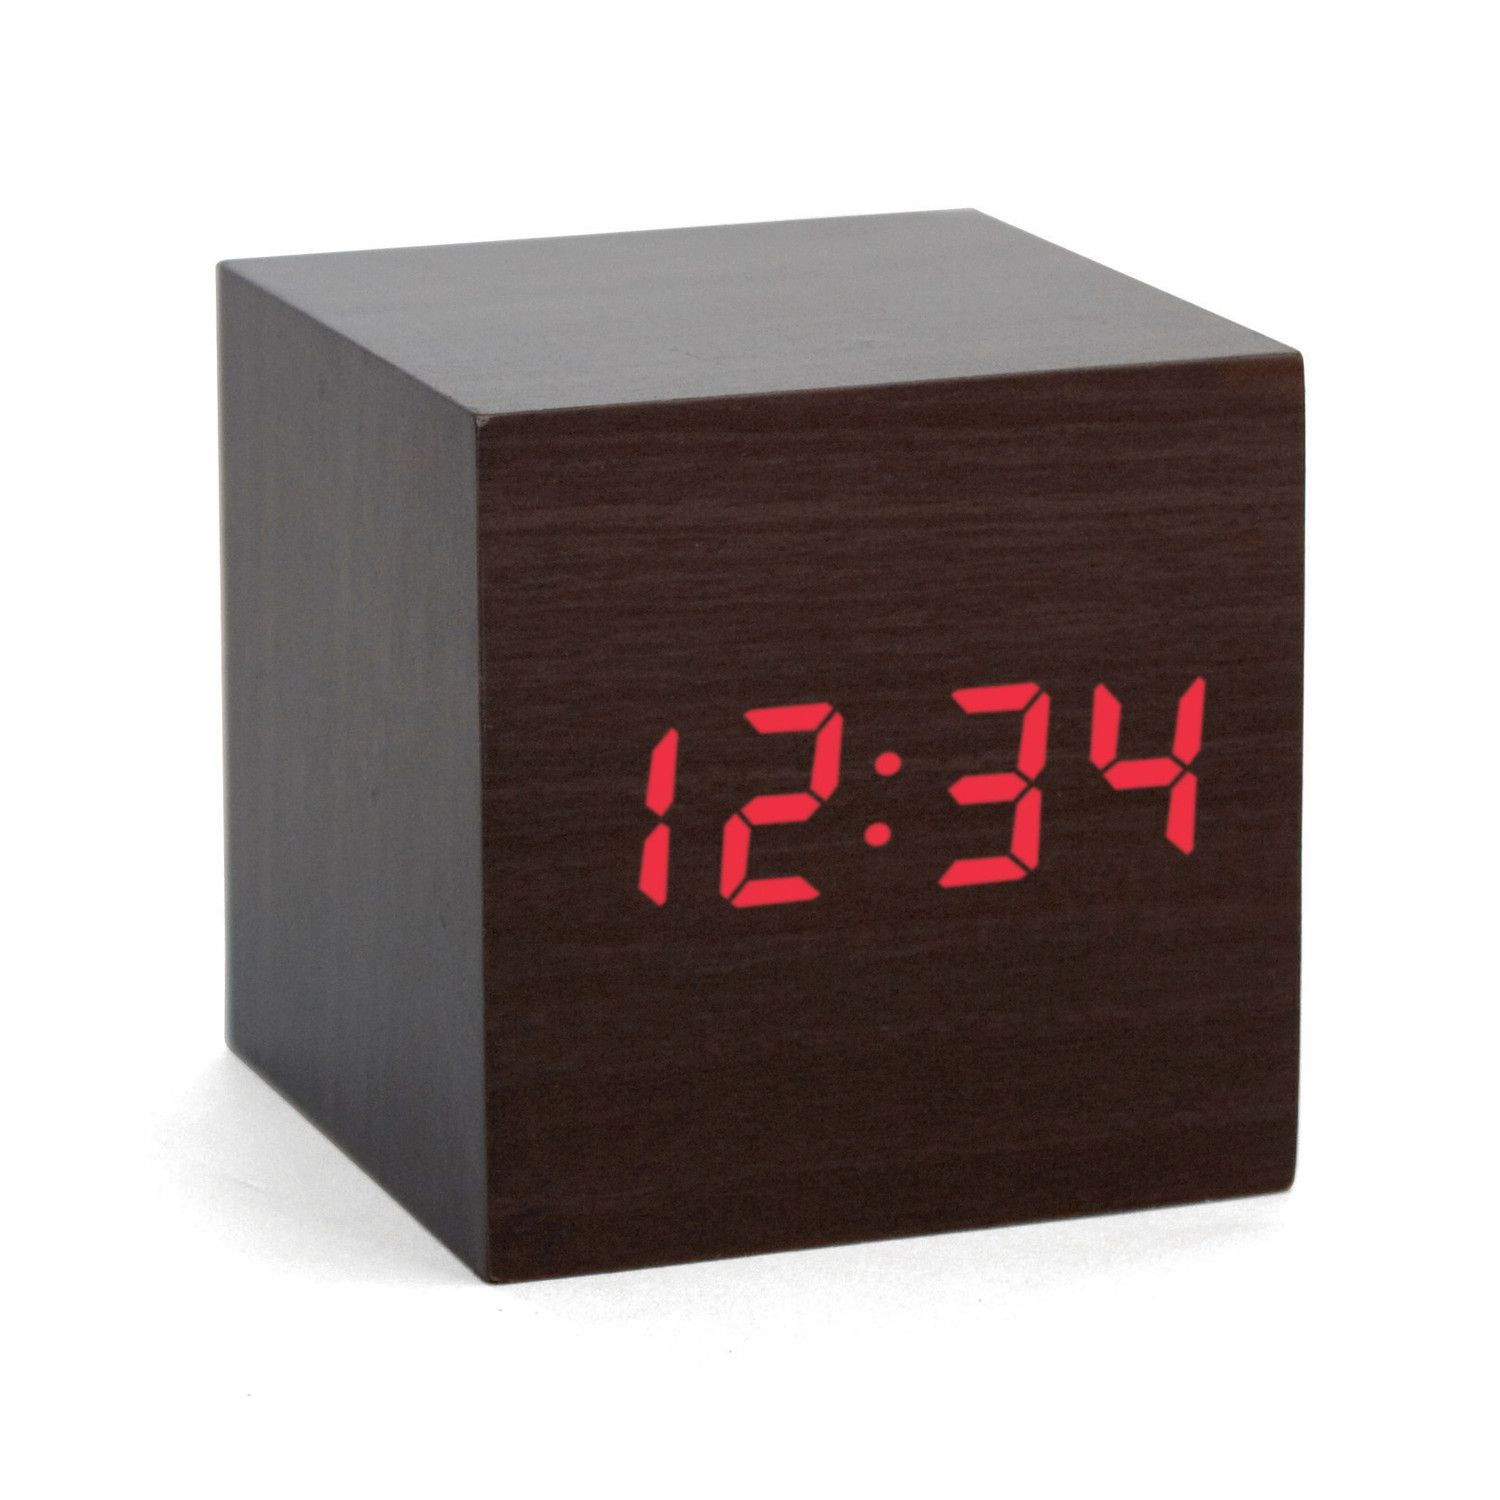 A dark wood veneer body with red LED digital time display- just clap your hands to make the red LED time appear or disappear